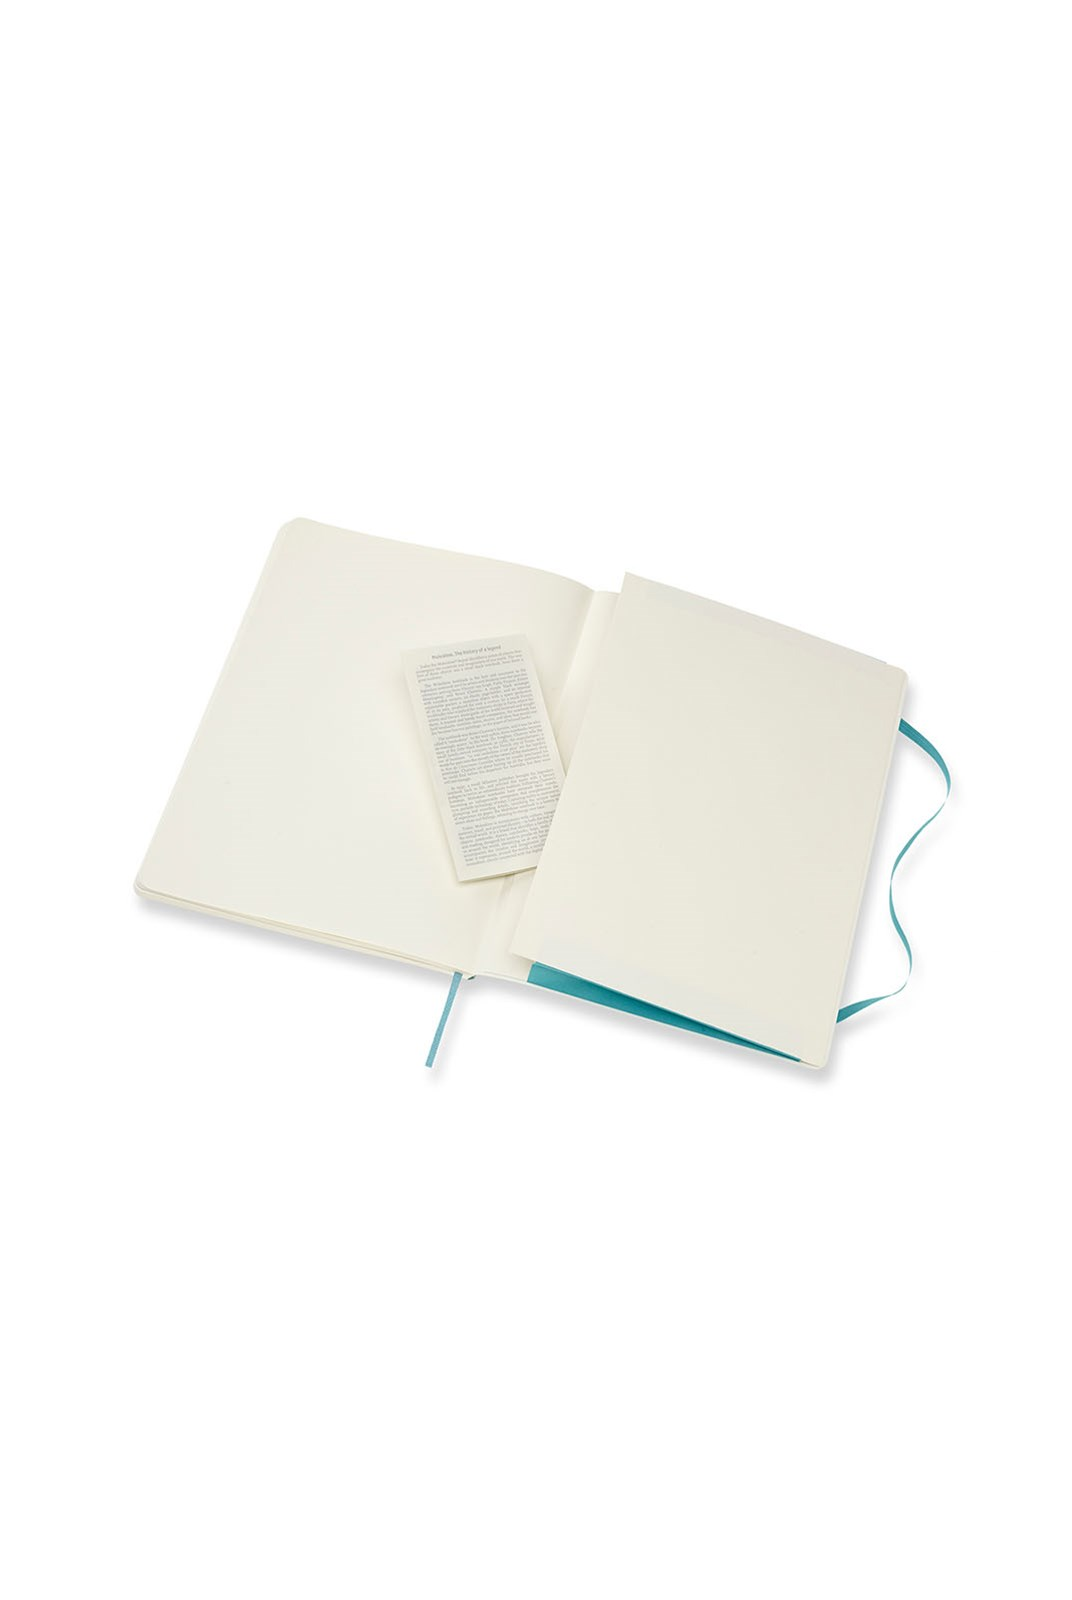 Moleskine - Classic Soft Cover Notebook - Plain - Extra Large - Reef Blue